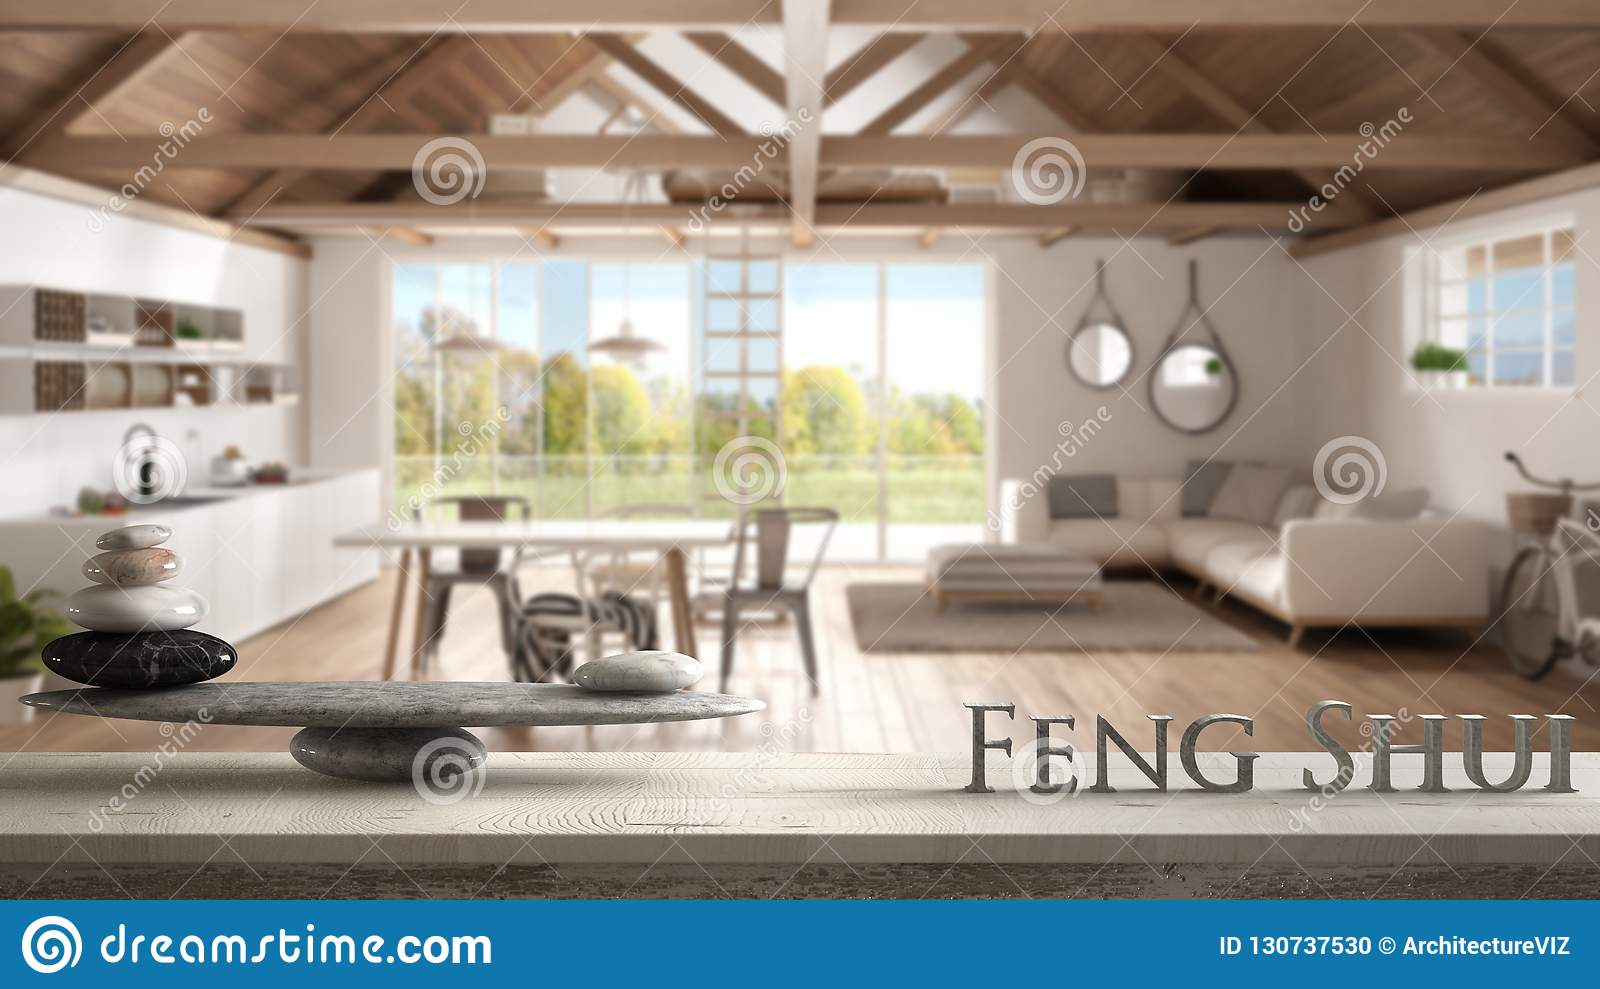 Wooden vintage table shelf with stone balance and 3d letters making the word feng shui over mezzanine loft, kitchen, living and be